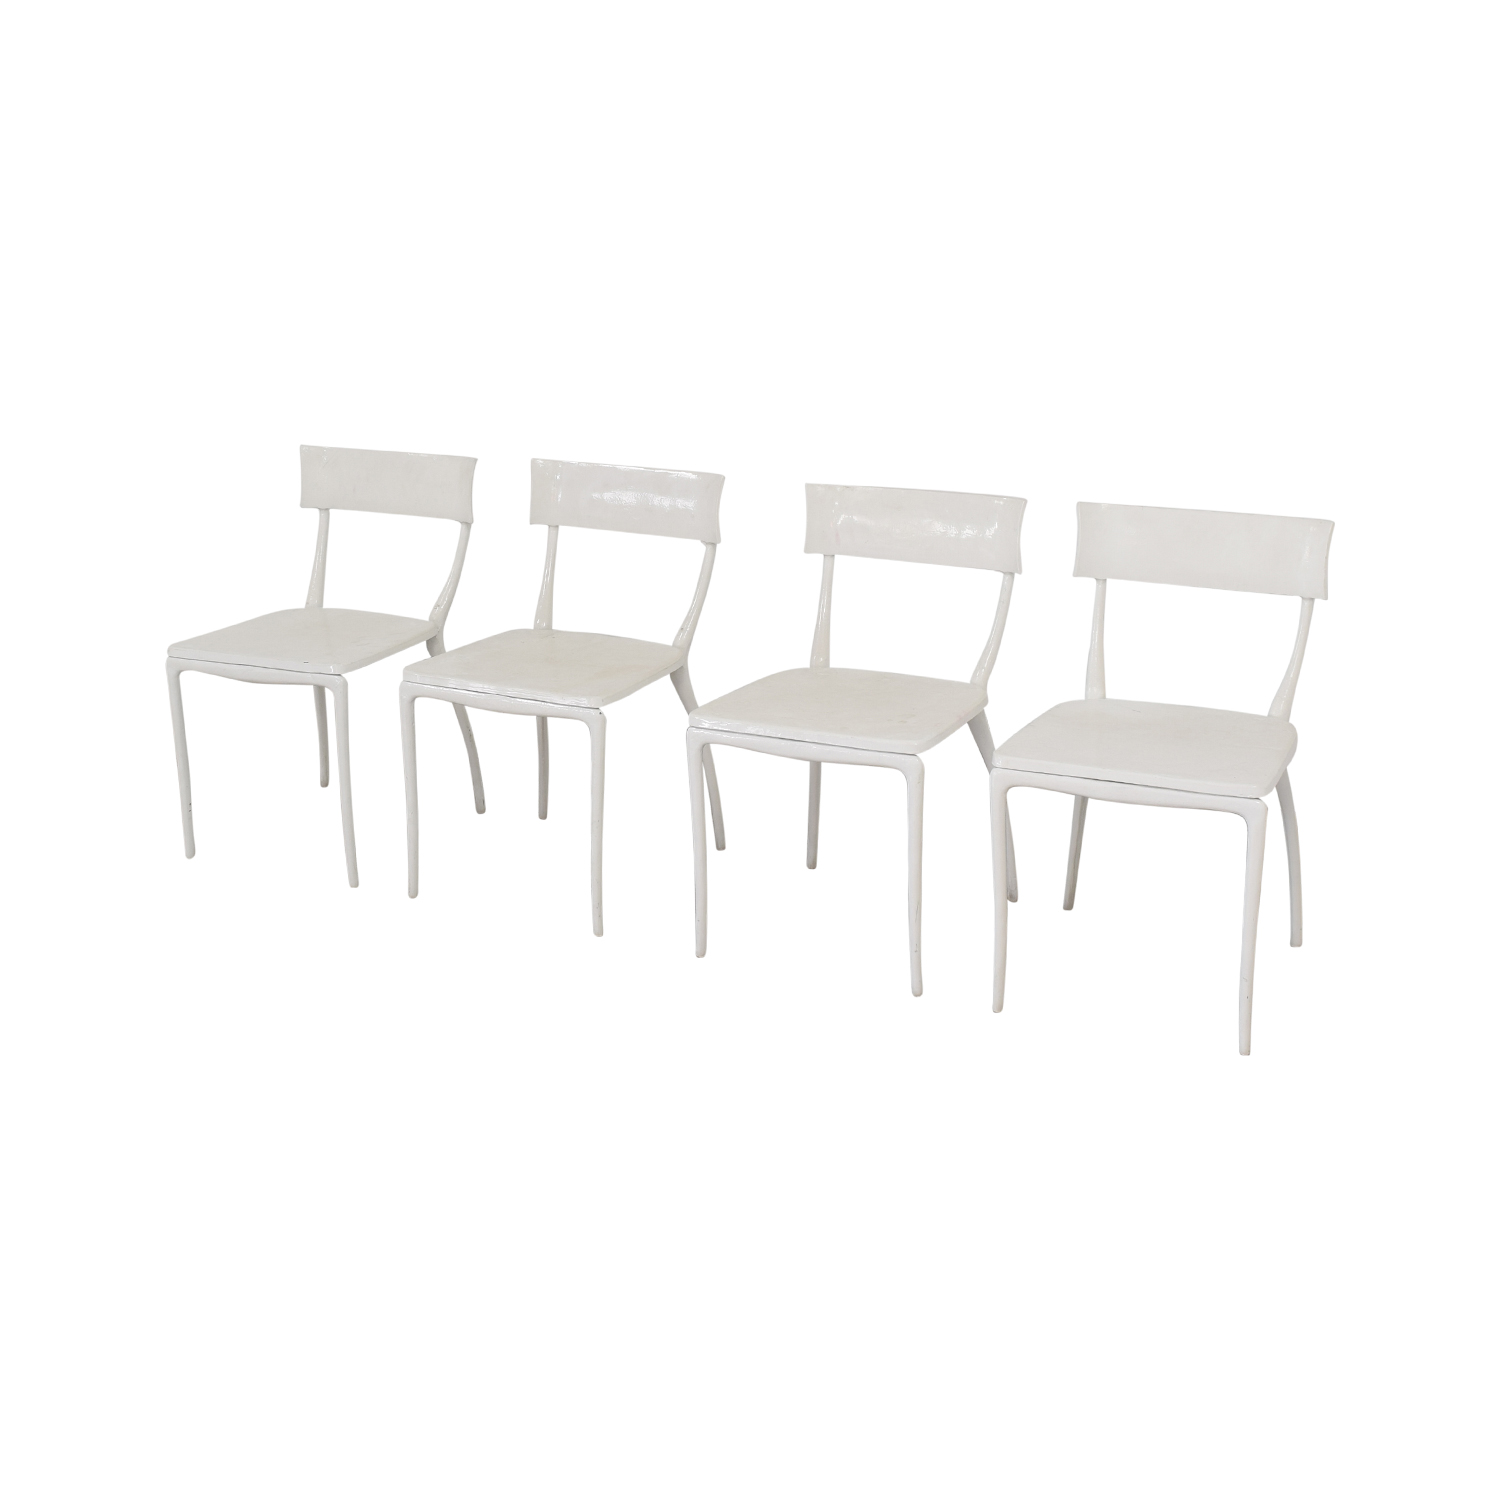 CB2 Midas White Dining Chairs / Chairs